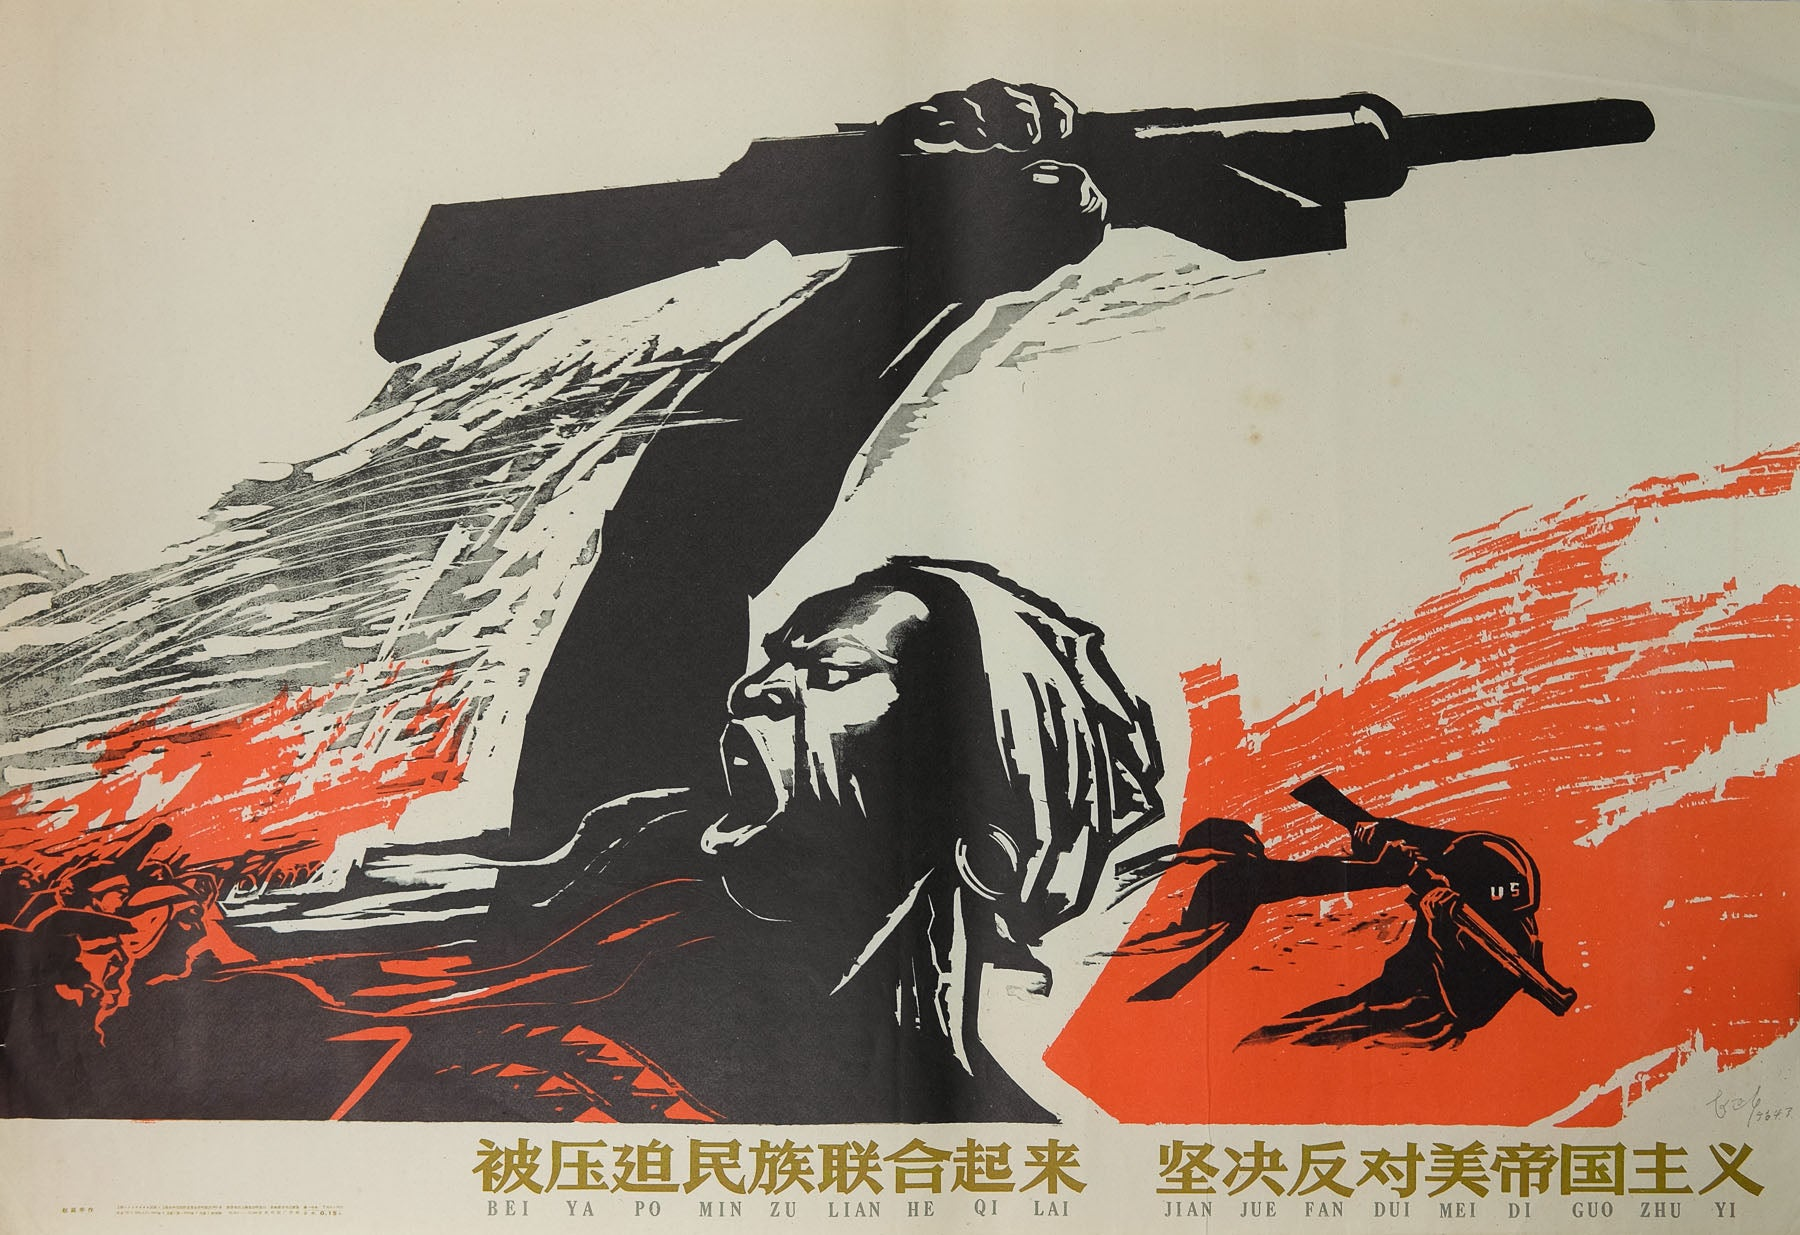 Authentic 1964 Chinese propaganda poster Oppressed ethnic groups, unite together and firmly fight American imperialism by Zhao Yannian